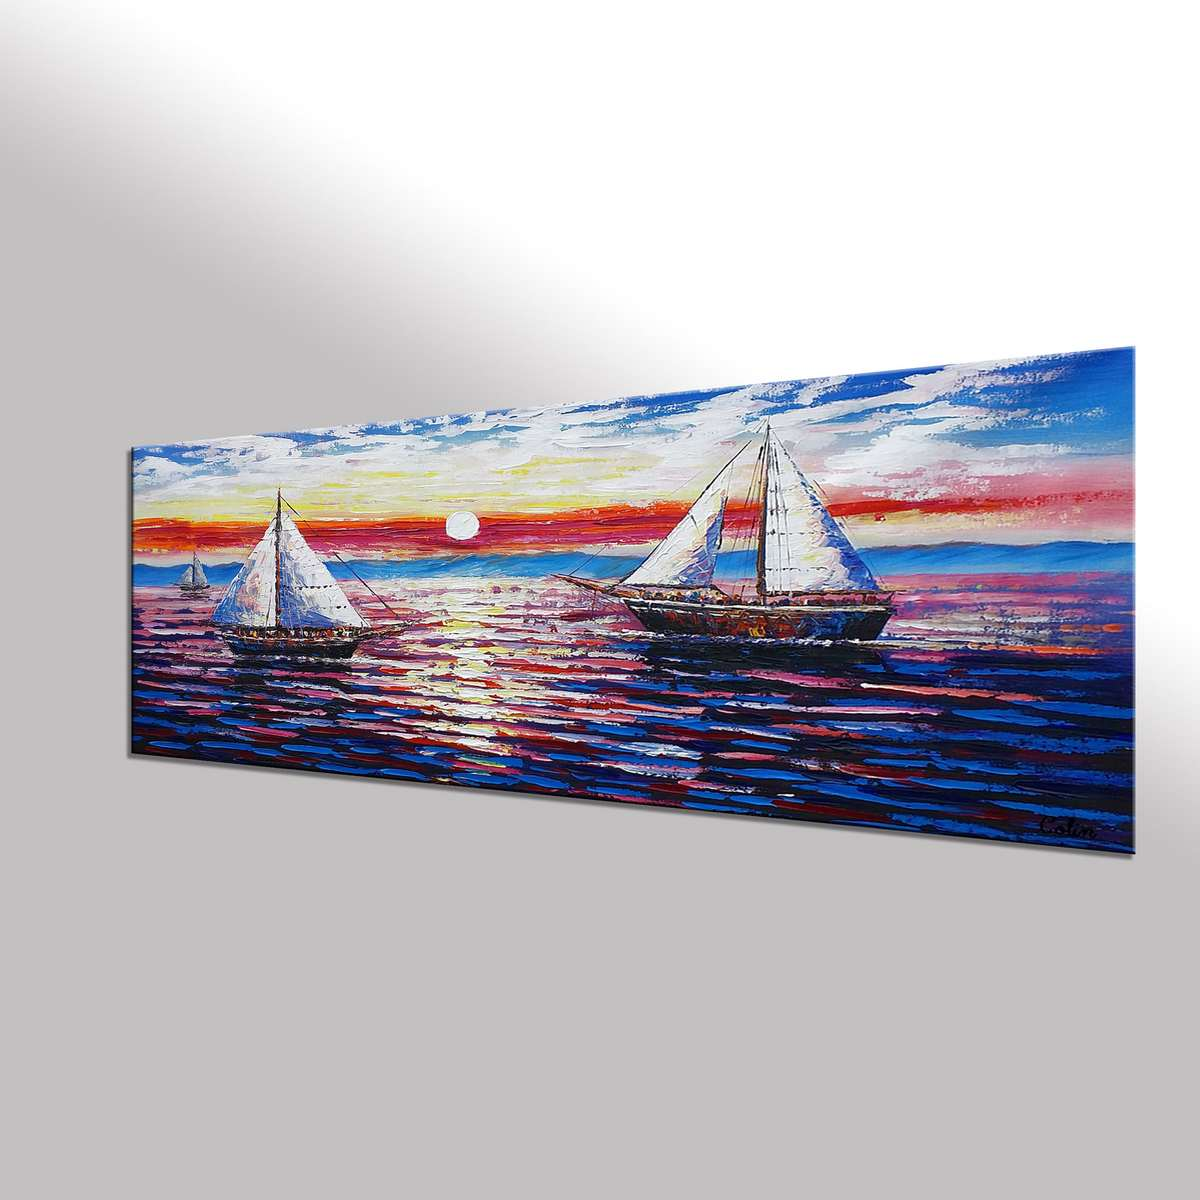 Sail Boat Painting, Original Wall Art, Seascape Painting, Framed Art, Canvas Art, Wall Art, Original Art, Canvas Painting, 391